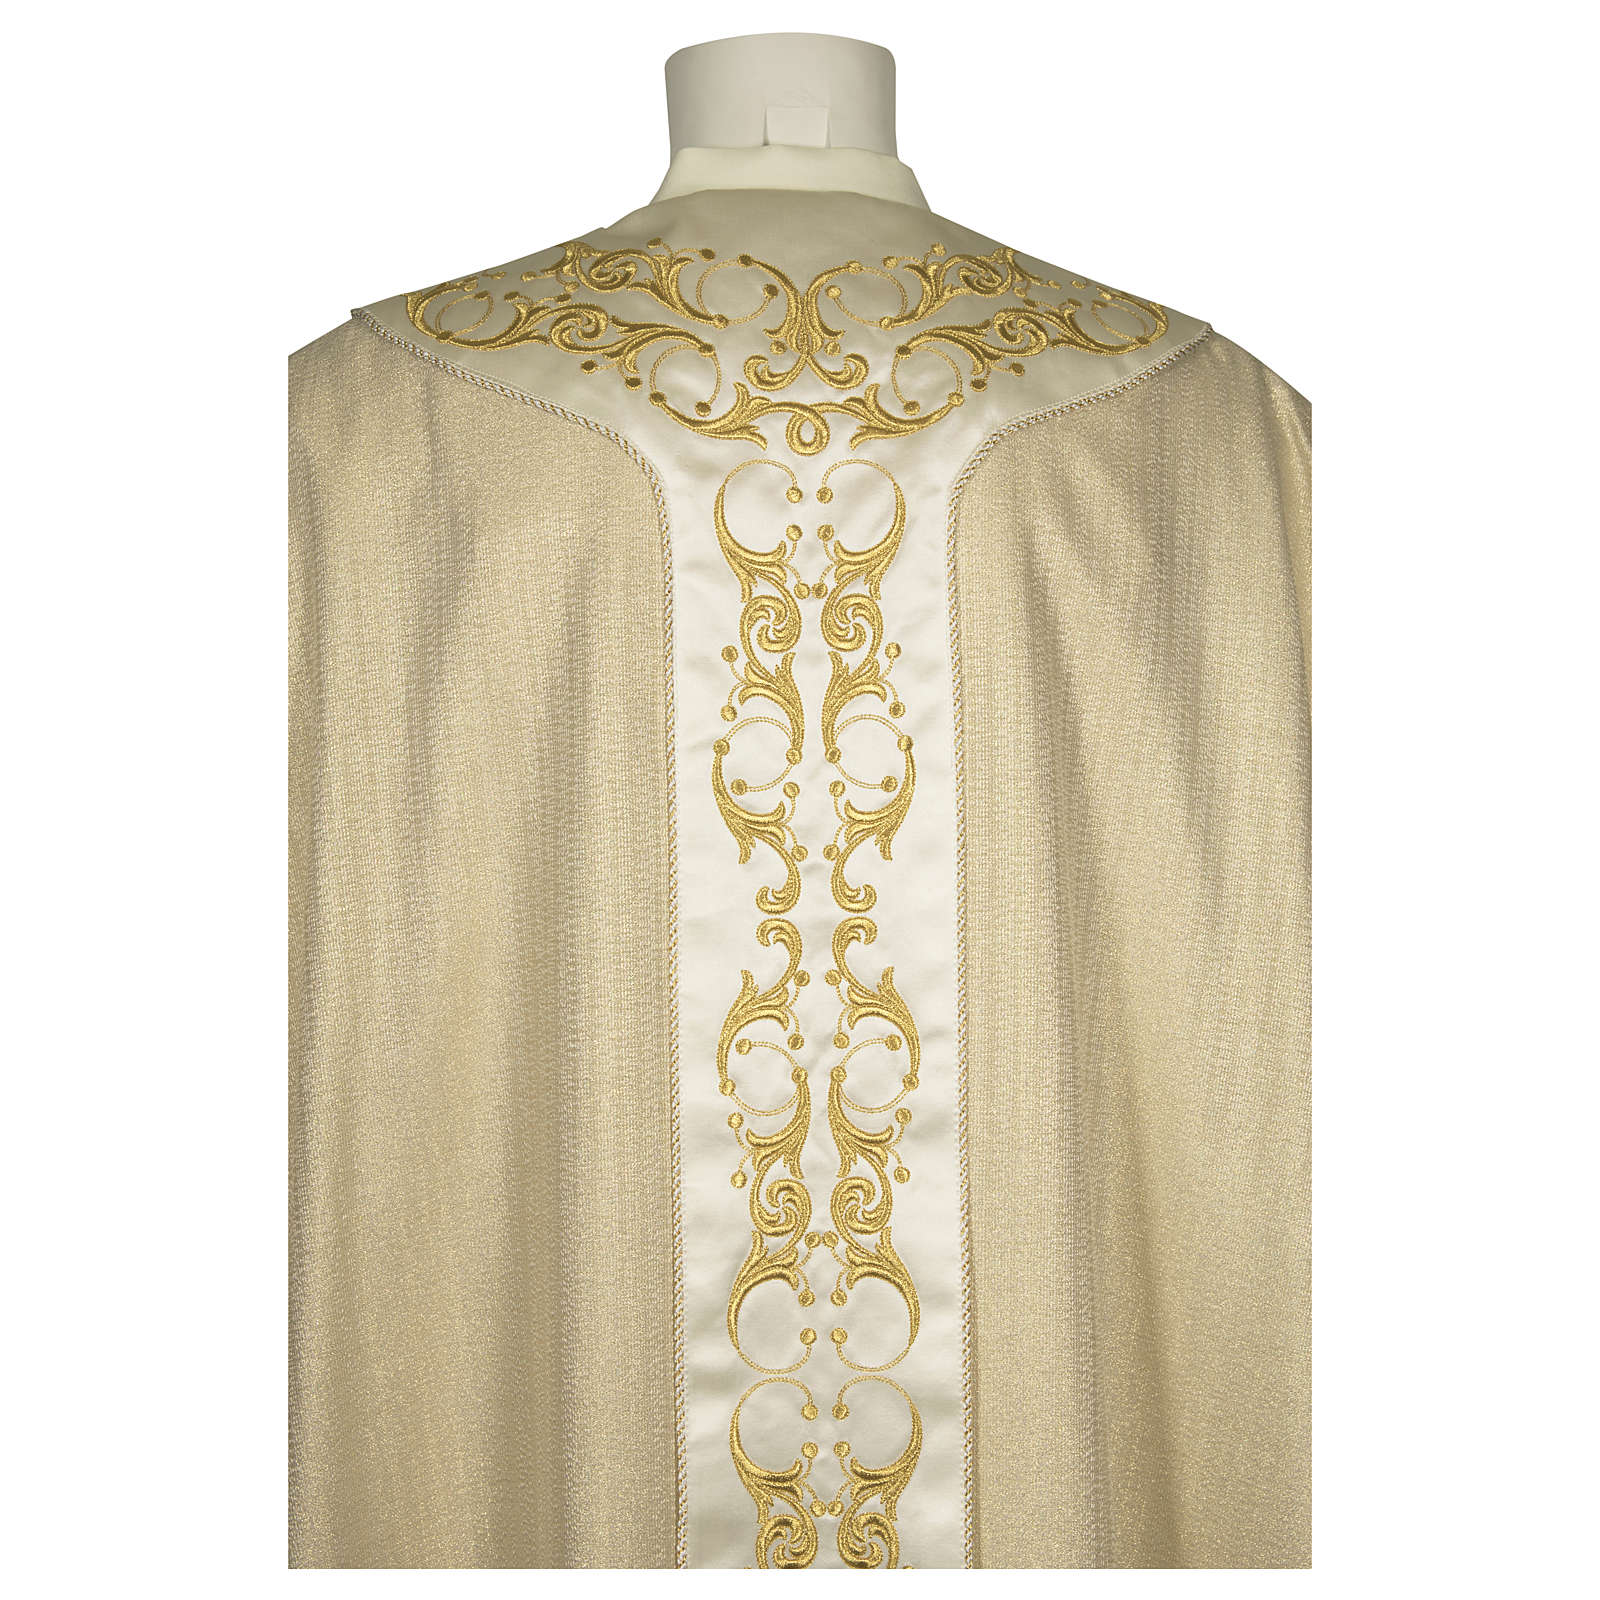 Catholic Chasuble in 90% wool 10% lurex with Cross and decorations 4